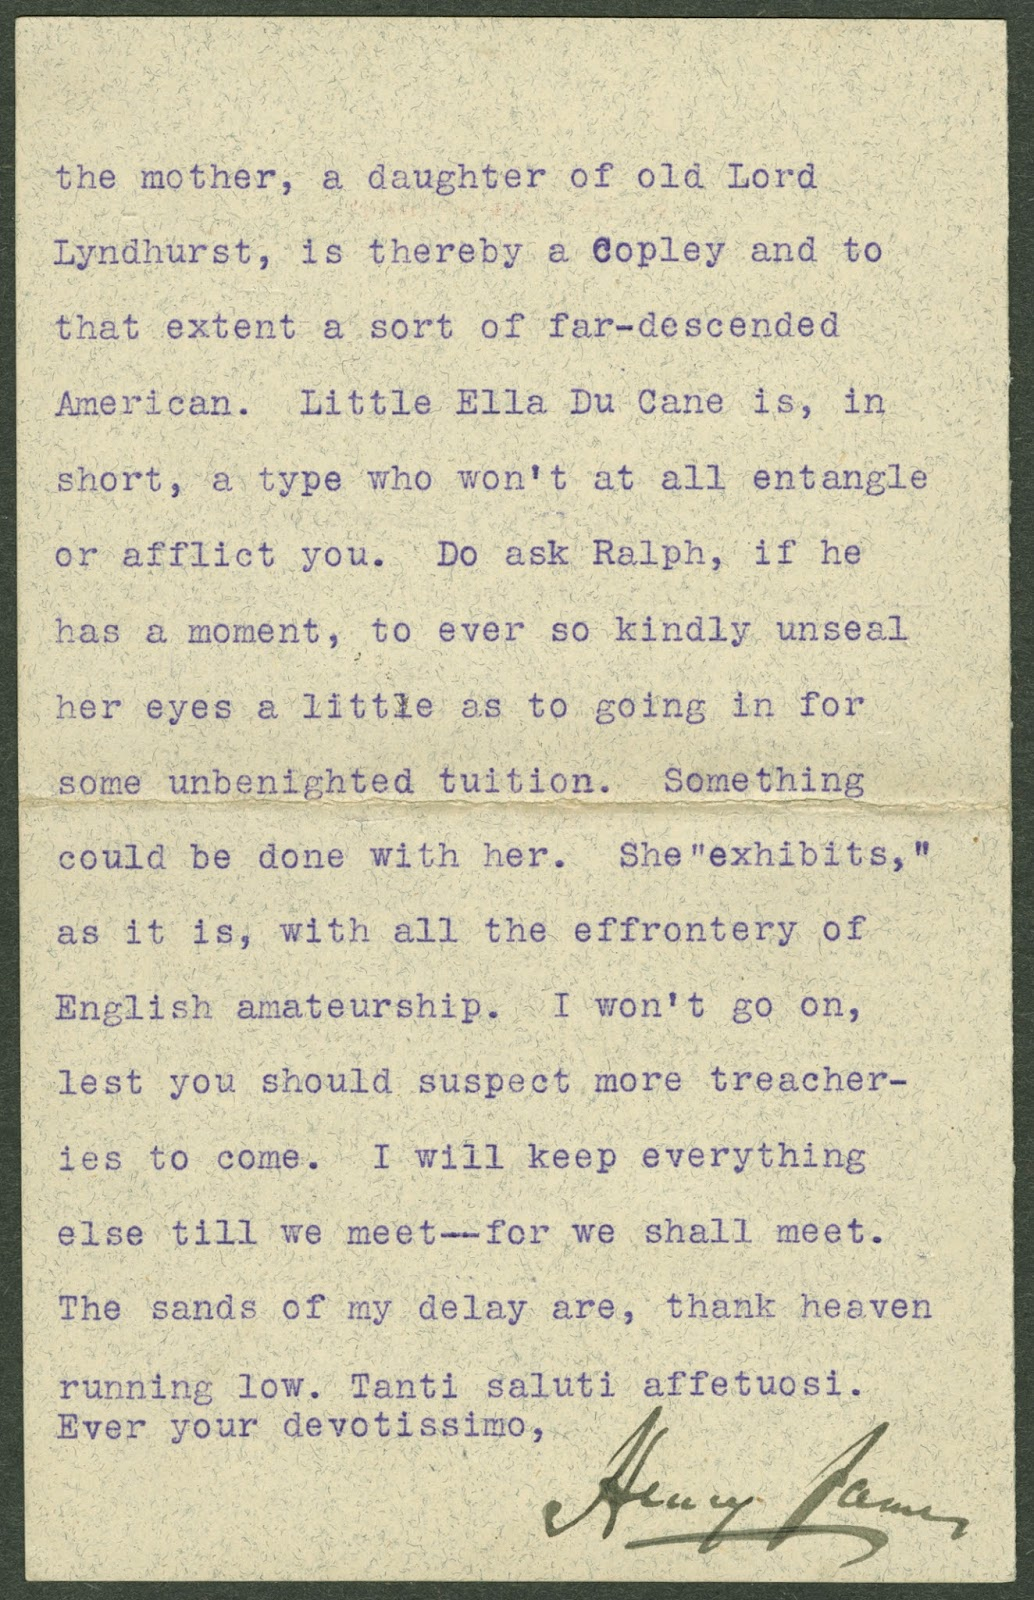 The last page from the typed letter.